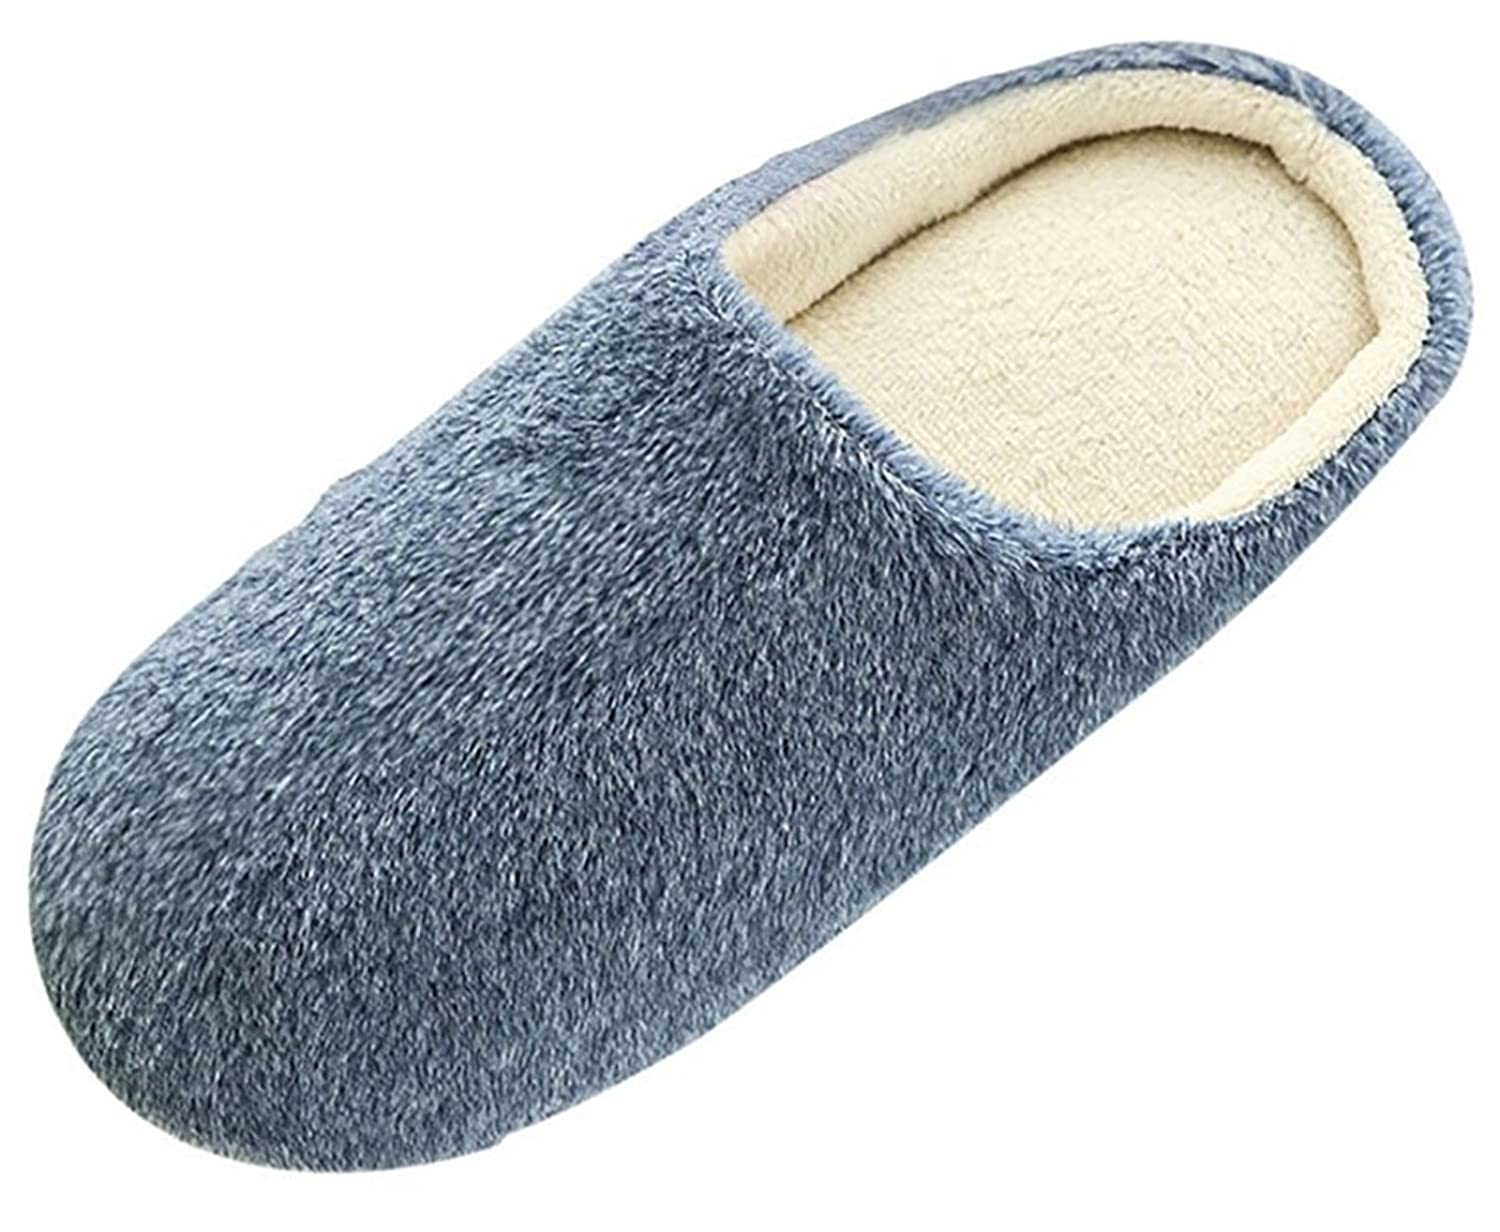 b1f6bd56f962 Eagsouni Mens Womens Cozy Plush Indoor Slippers Home House Winter Warm  Floor Slip On Shoes